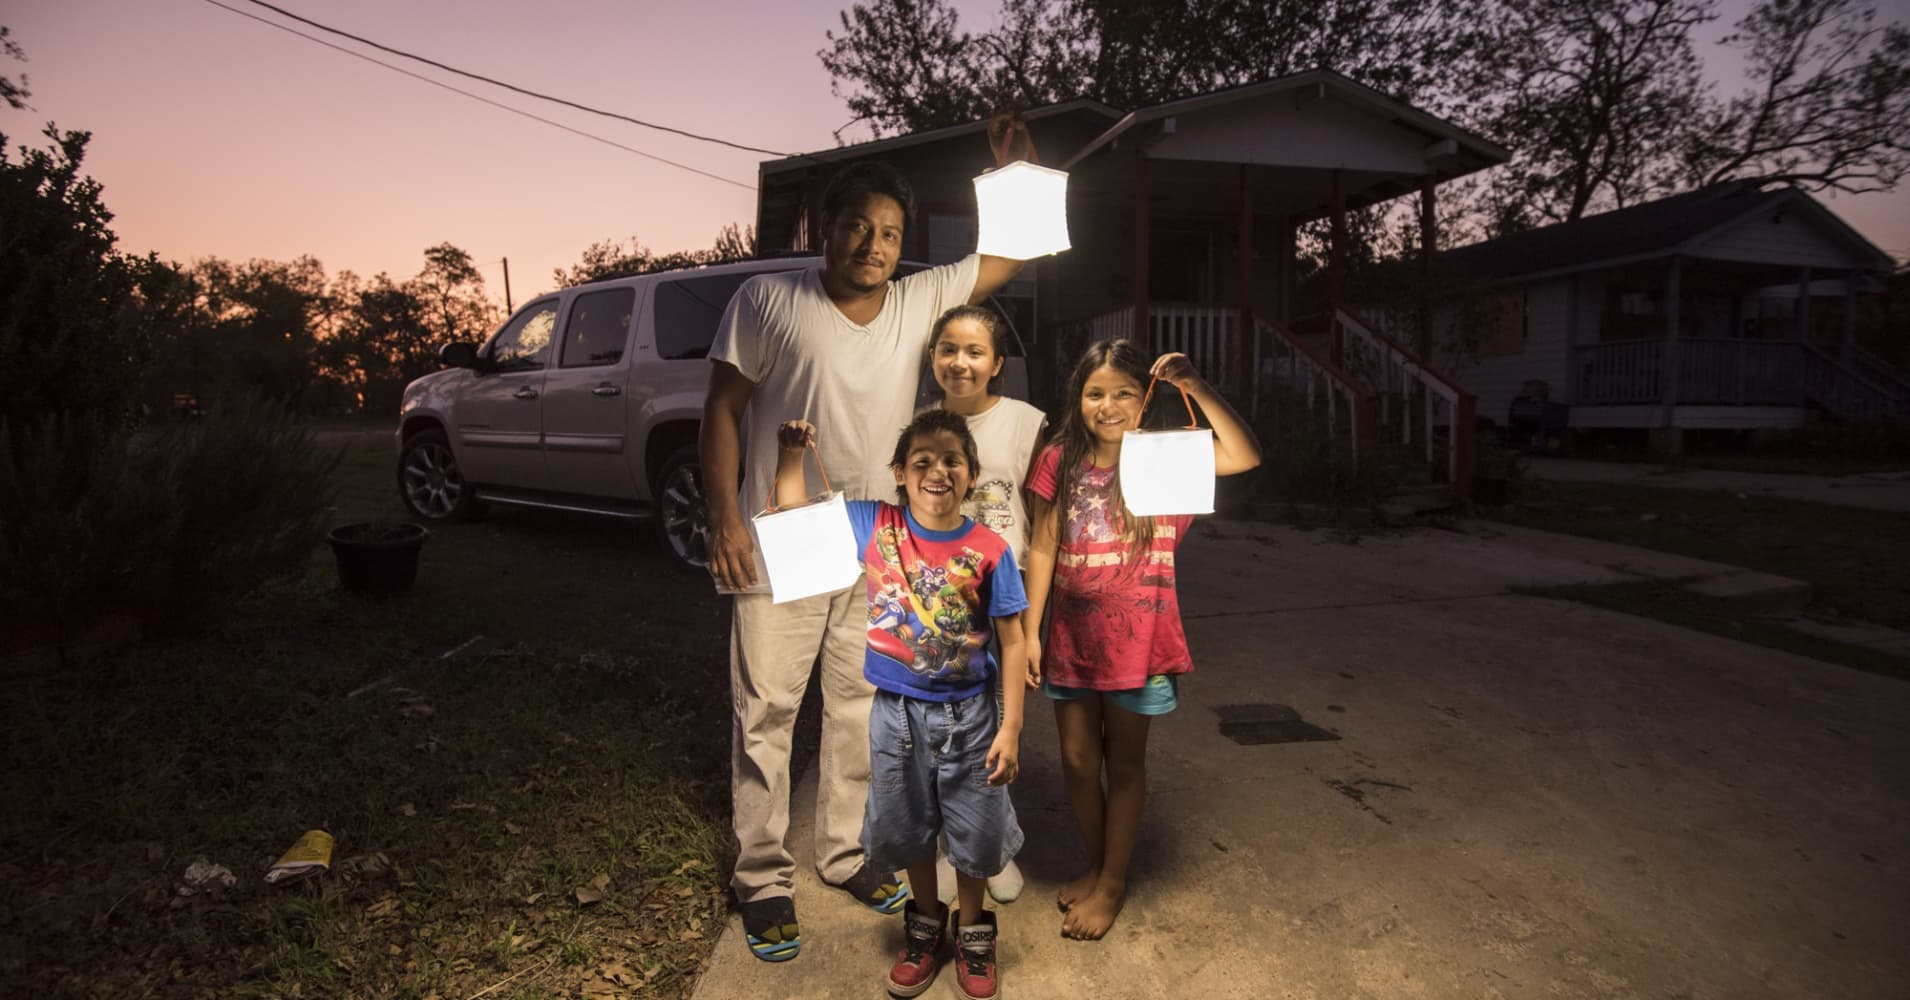 This family in Victoria, Texas was flooded and without electricity after Hurricane Harvey. LuminAID's nonprofit partner Convoy of Hope assisted them and provided them with waterproof LuminAID lights.